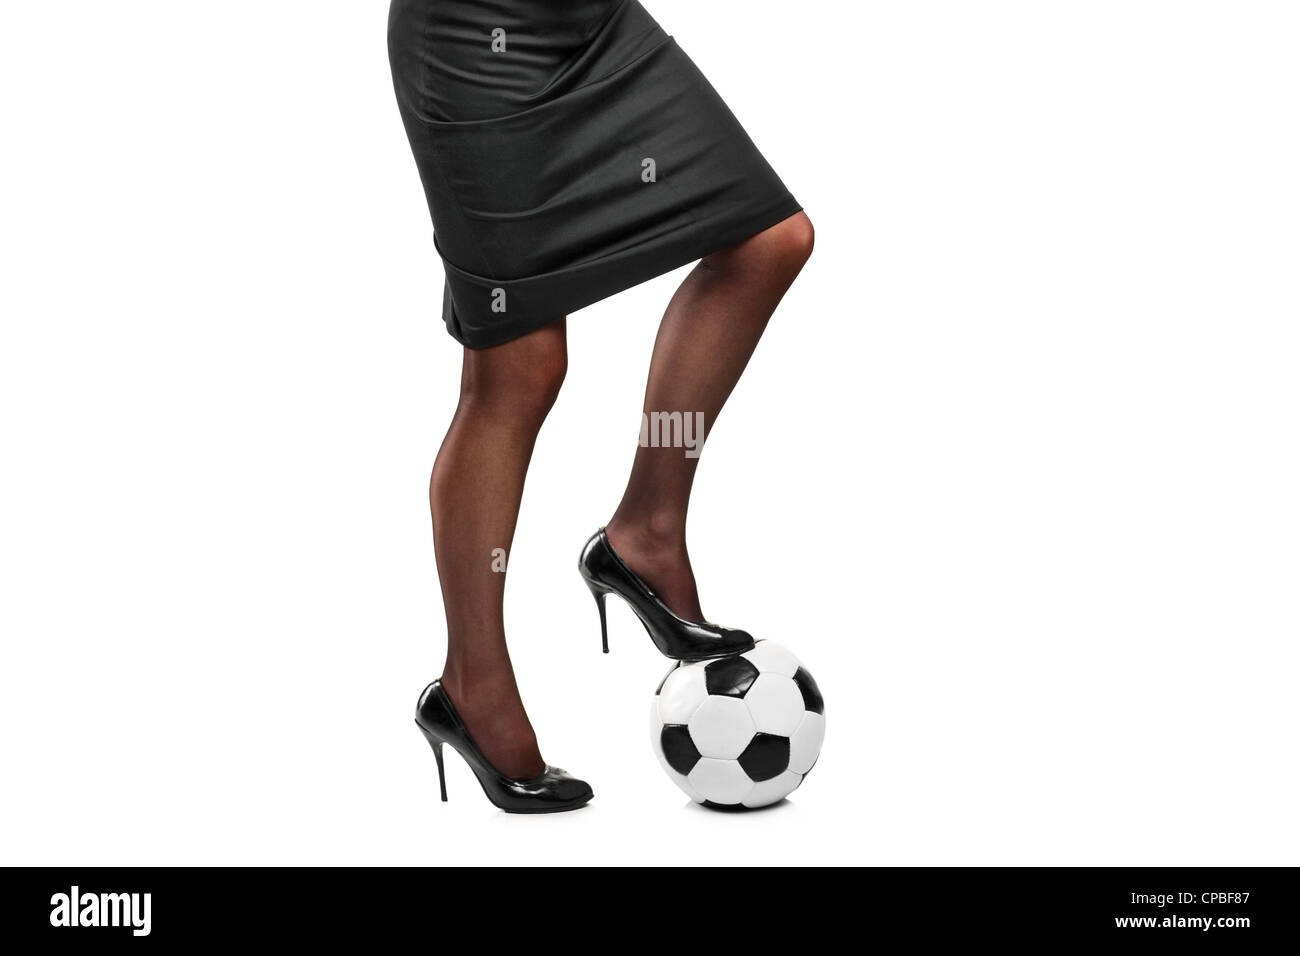 Woman in high heels standing on a soccer ball isolated on white background - Stock Image